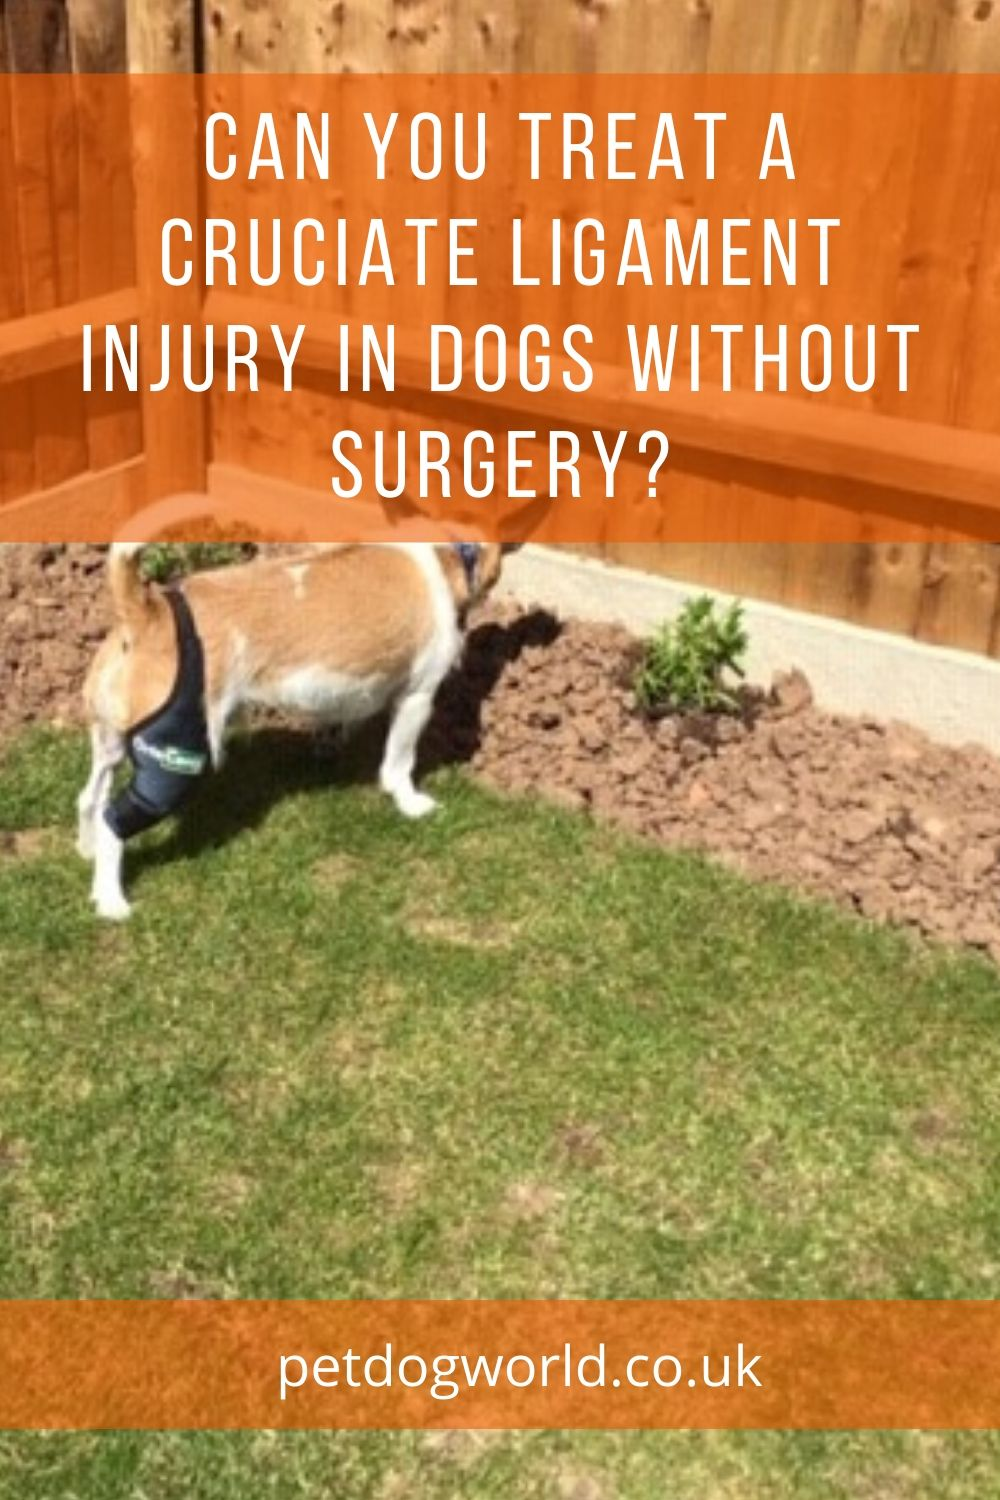 Can You Treat A Cruciate Ligament Injury in Dogs Without Surgery?